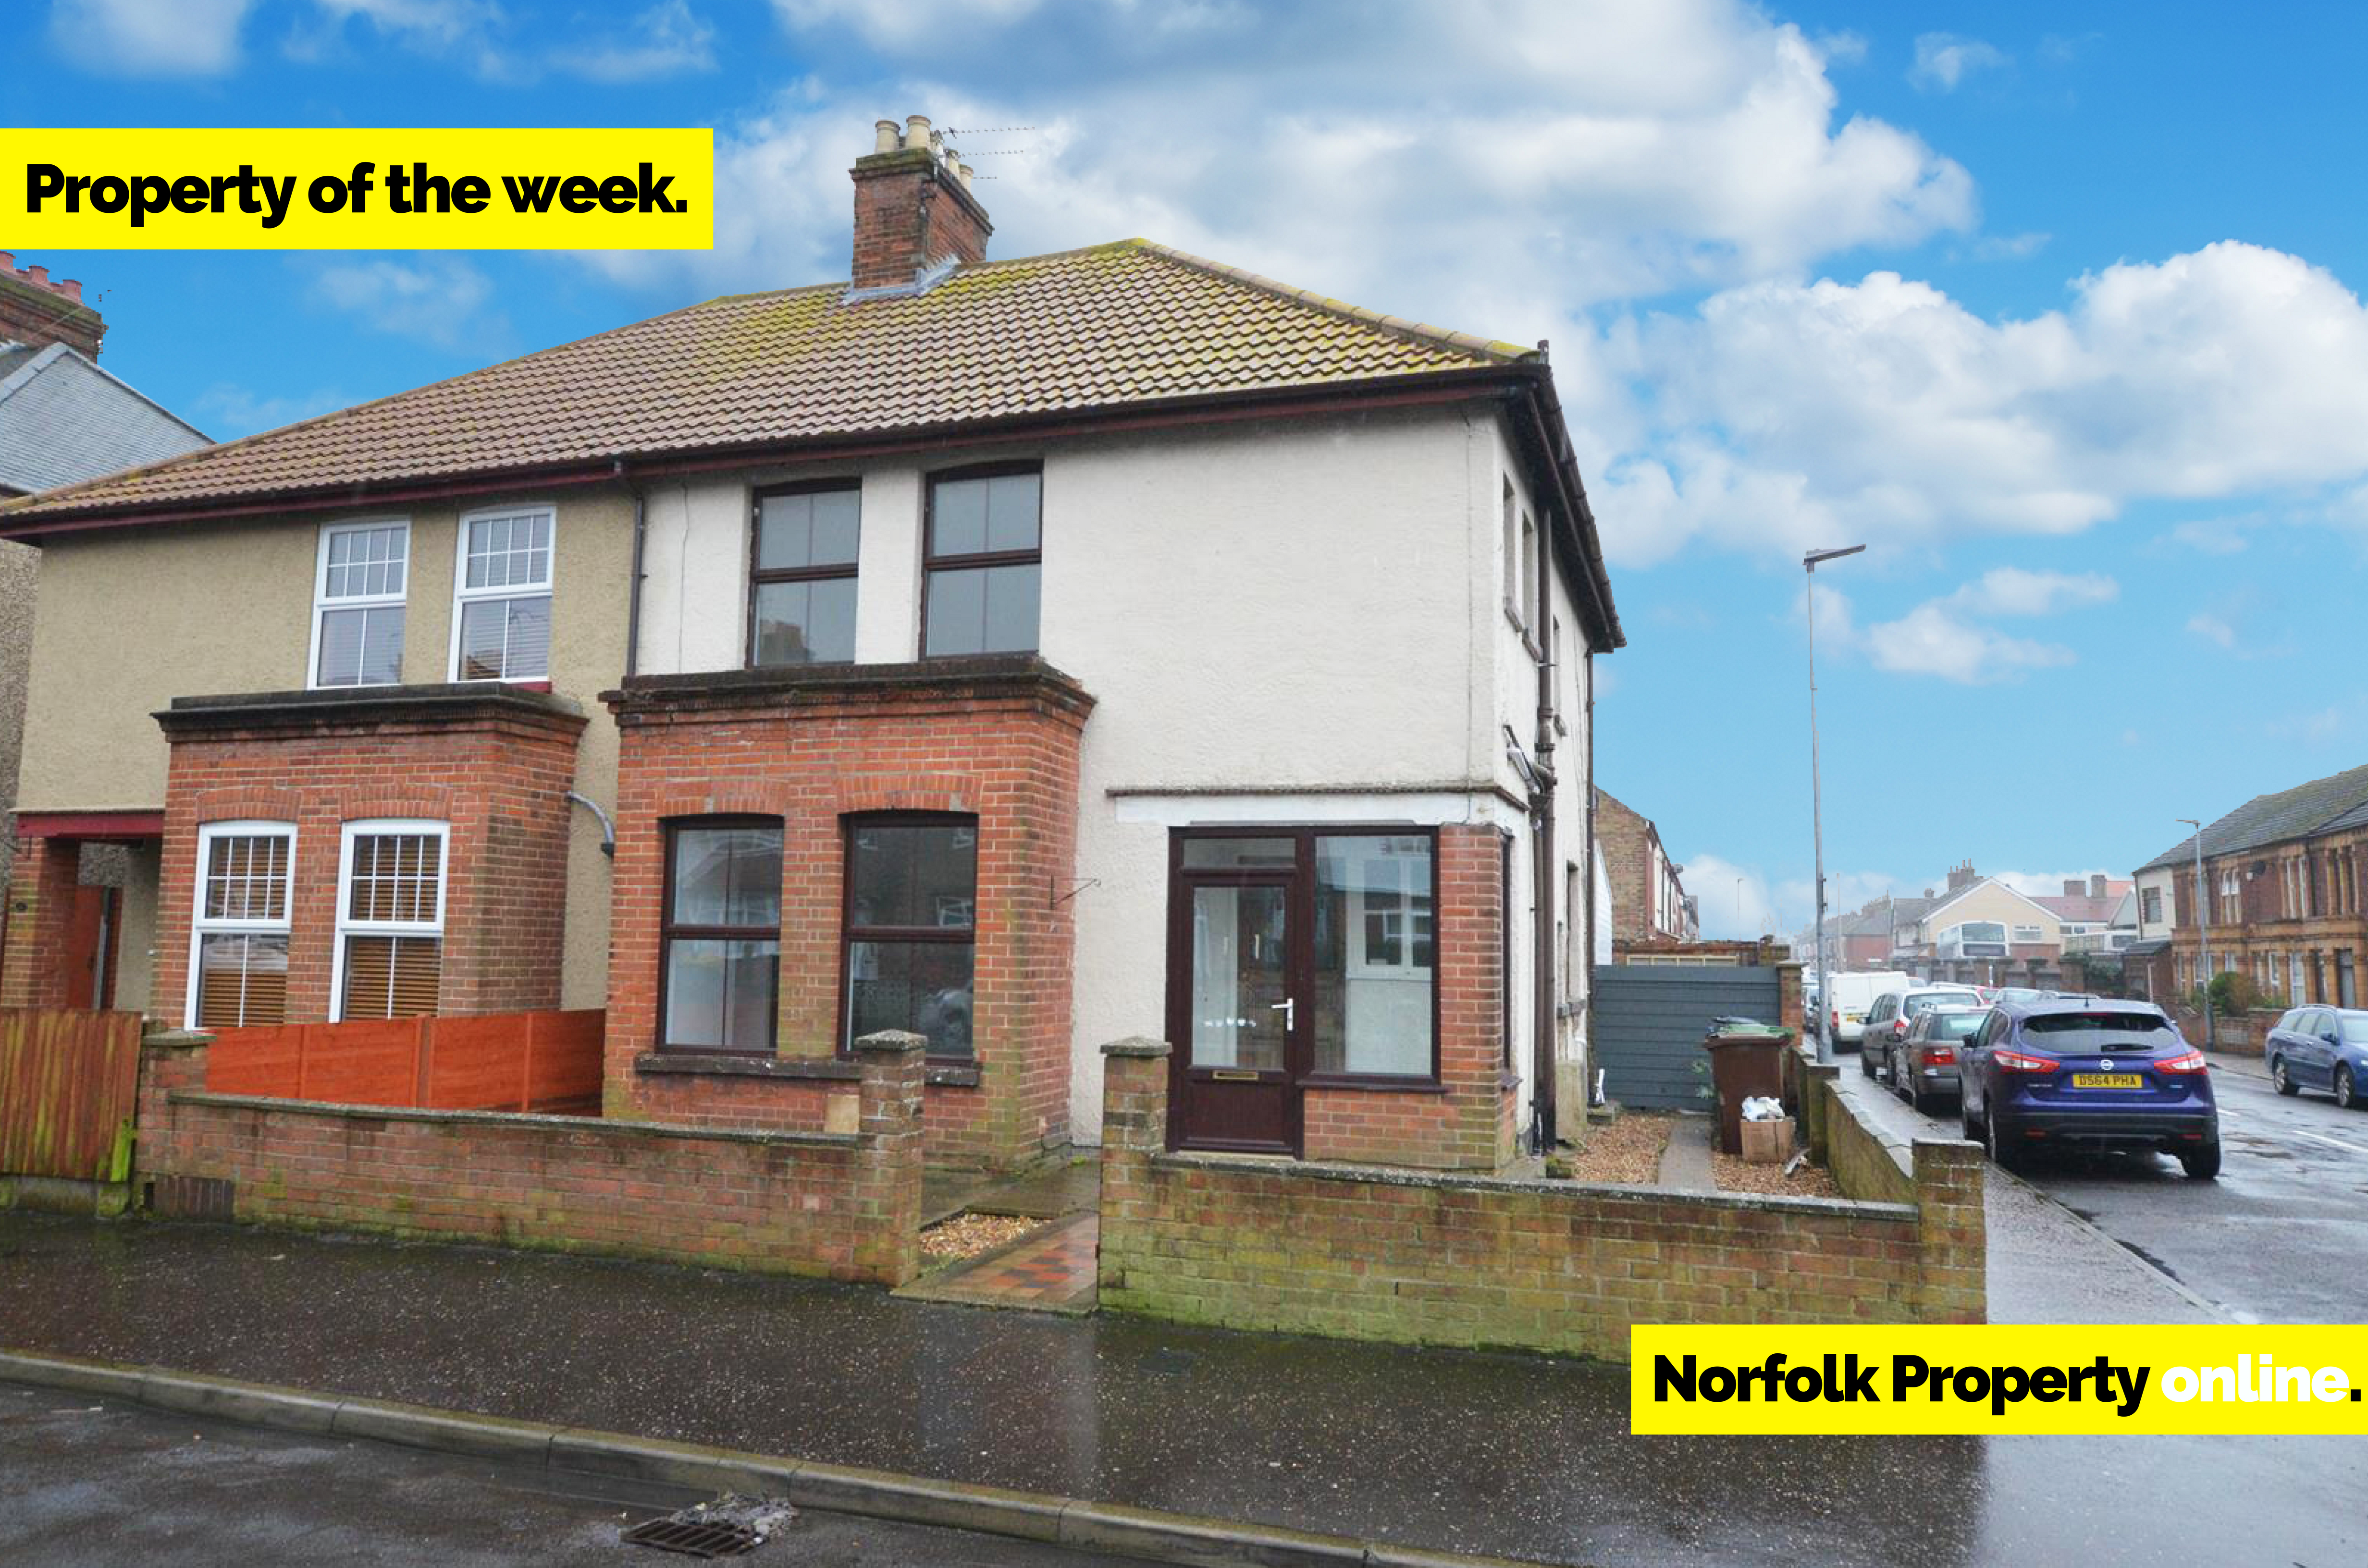 Property on Hamilton Road in Great Yarmouth